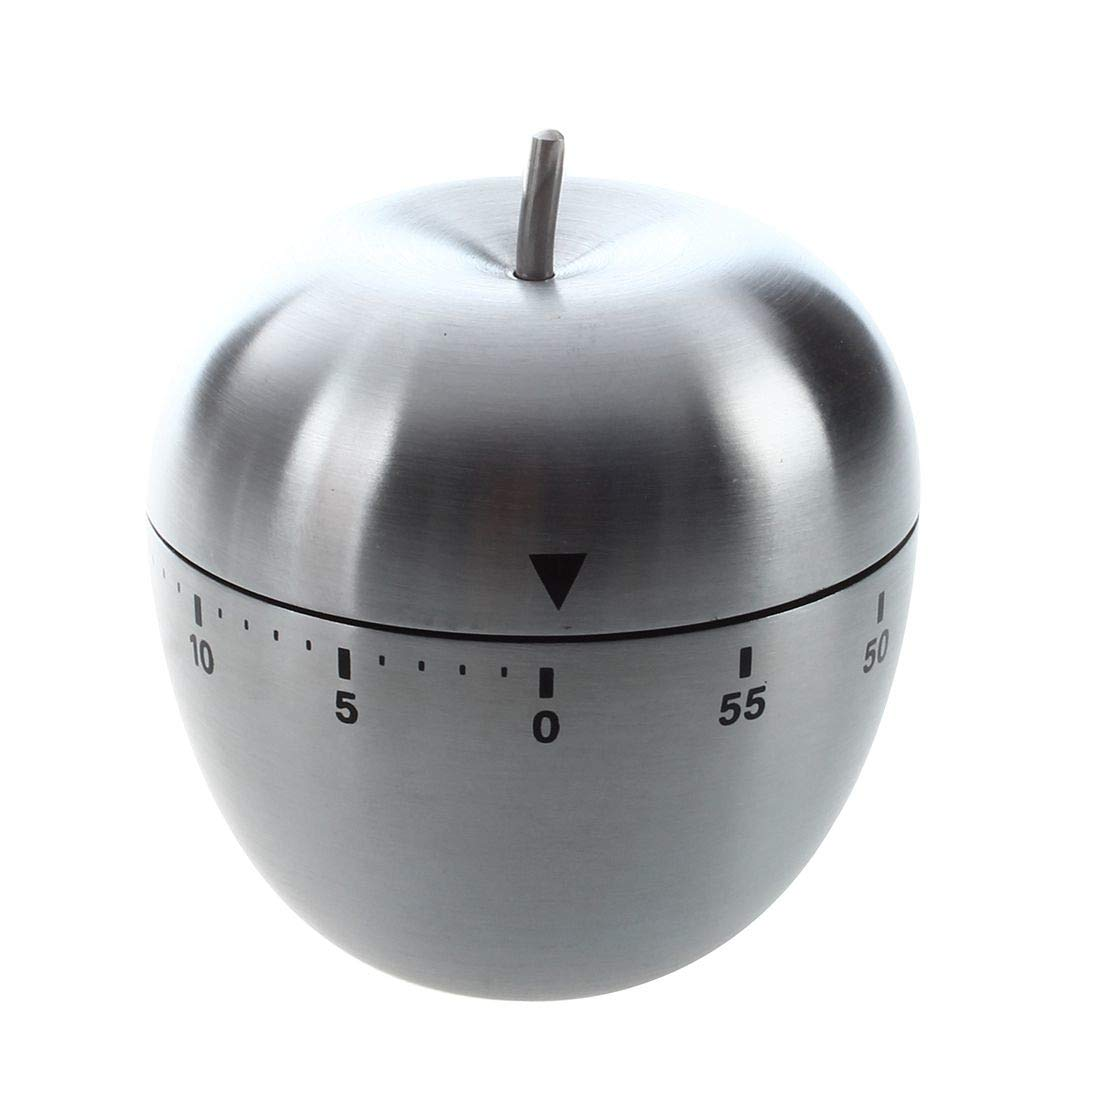 Kitchen Timers - Stainless Steel 60 Minute Countdown Cooking Mechanical Alarm Timer Clock Apple Shape - Countdown Clock Kitchen Kids Timer Alarm Kitchen Timers Timer Stainless Steel Mechanic